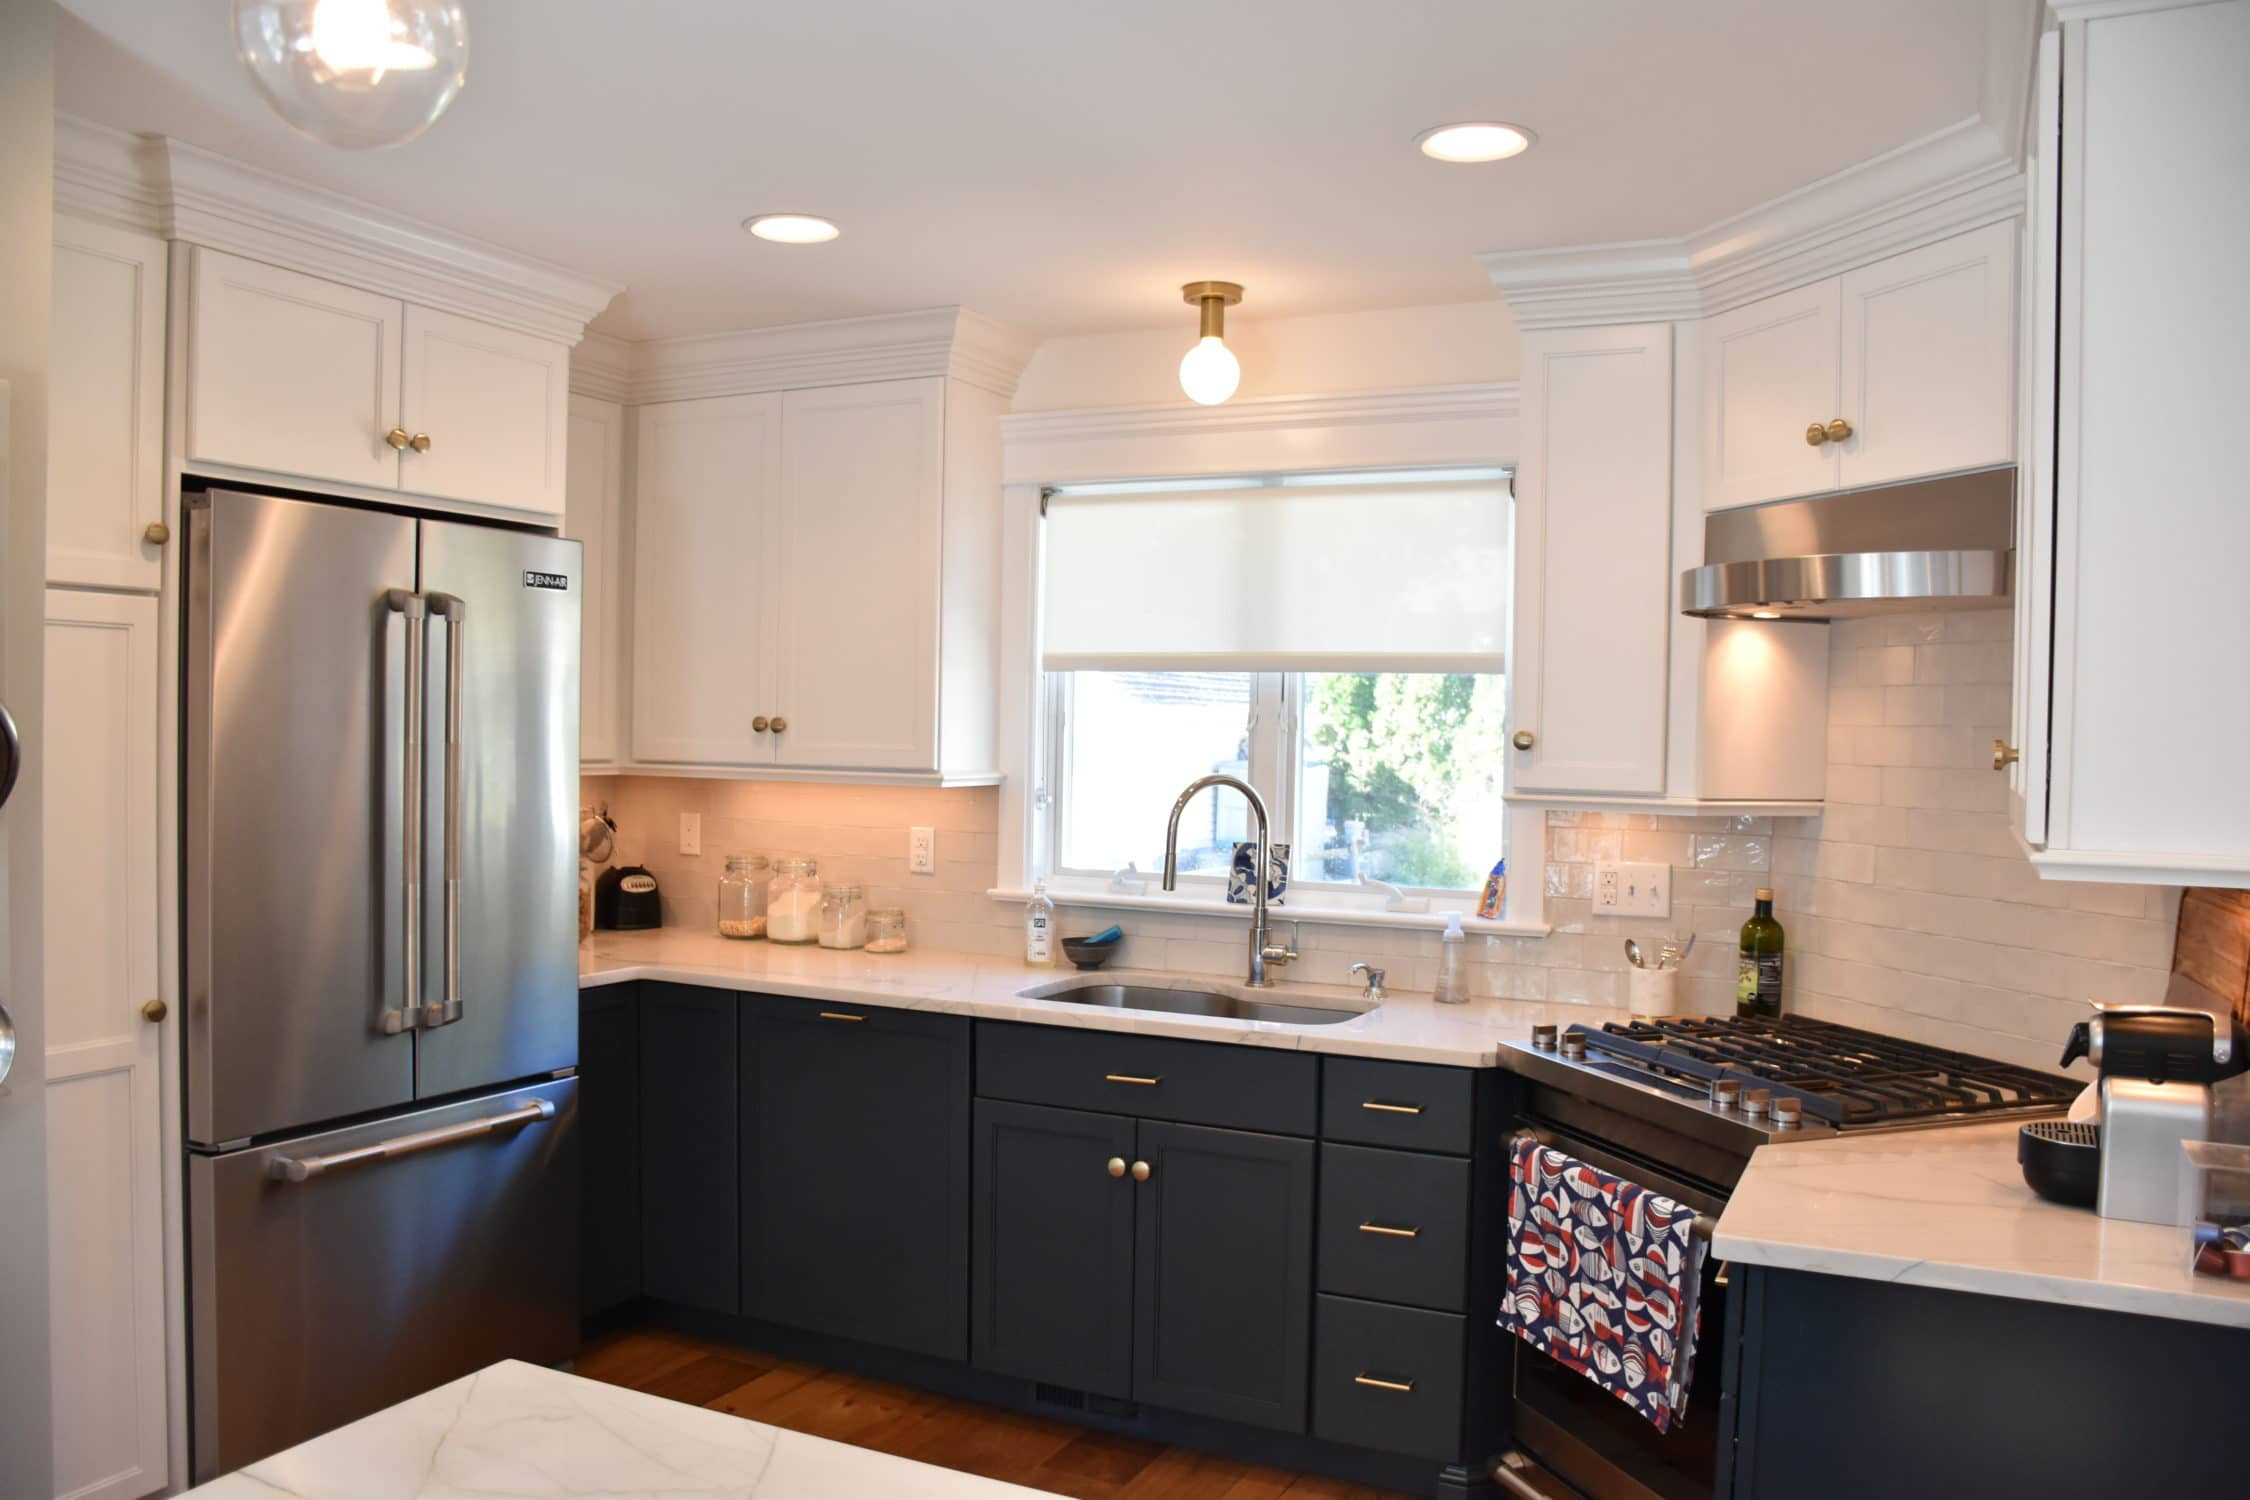 Kitchen Remodeling Ideas Pictures  Top 10 Creative Ideas for NJ Kitchen Remodeling in 2019